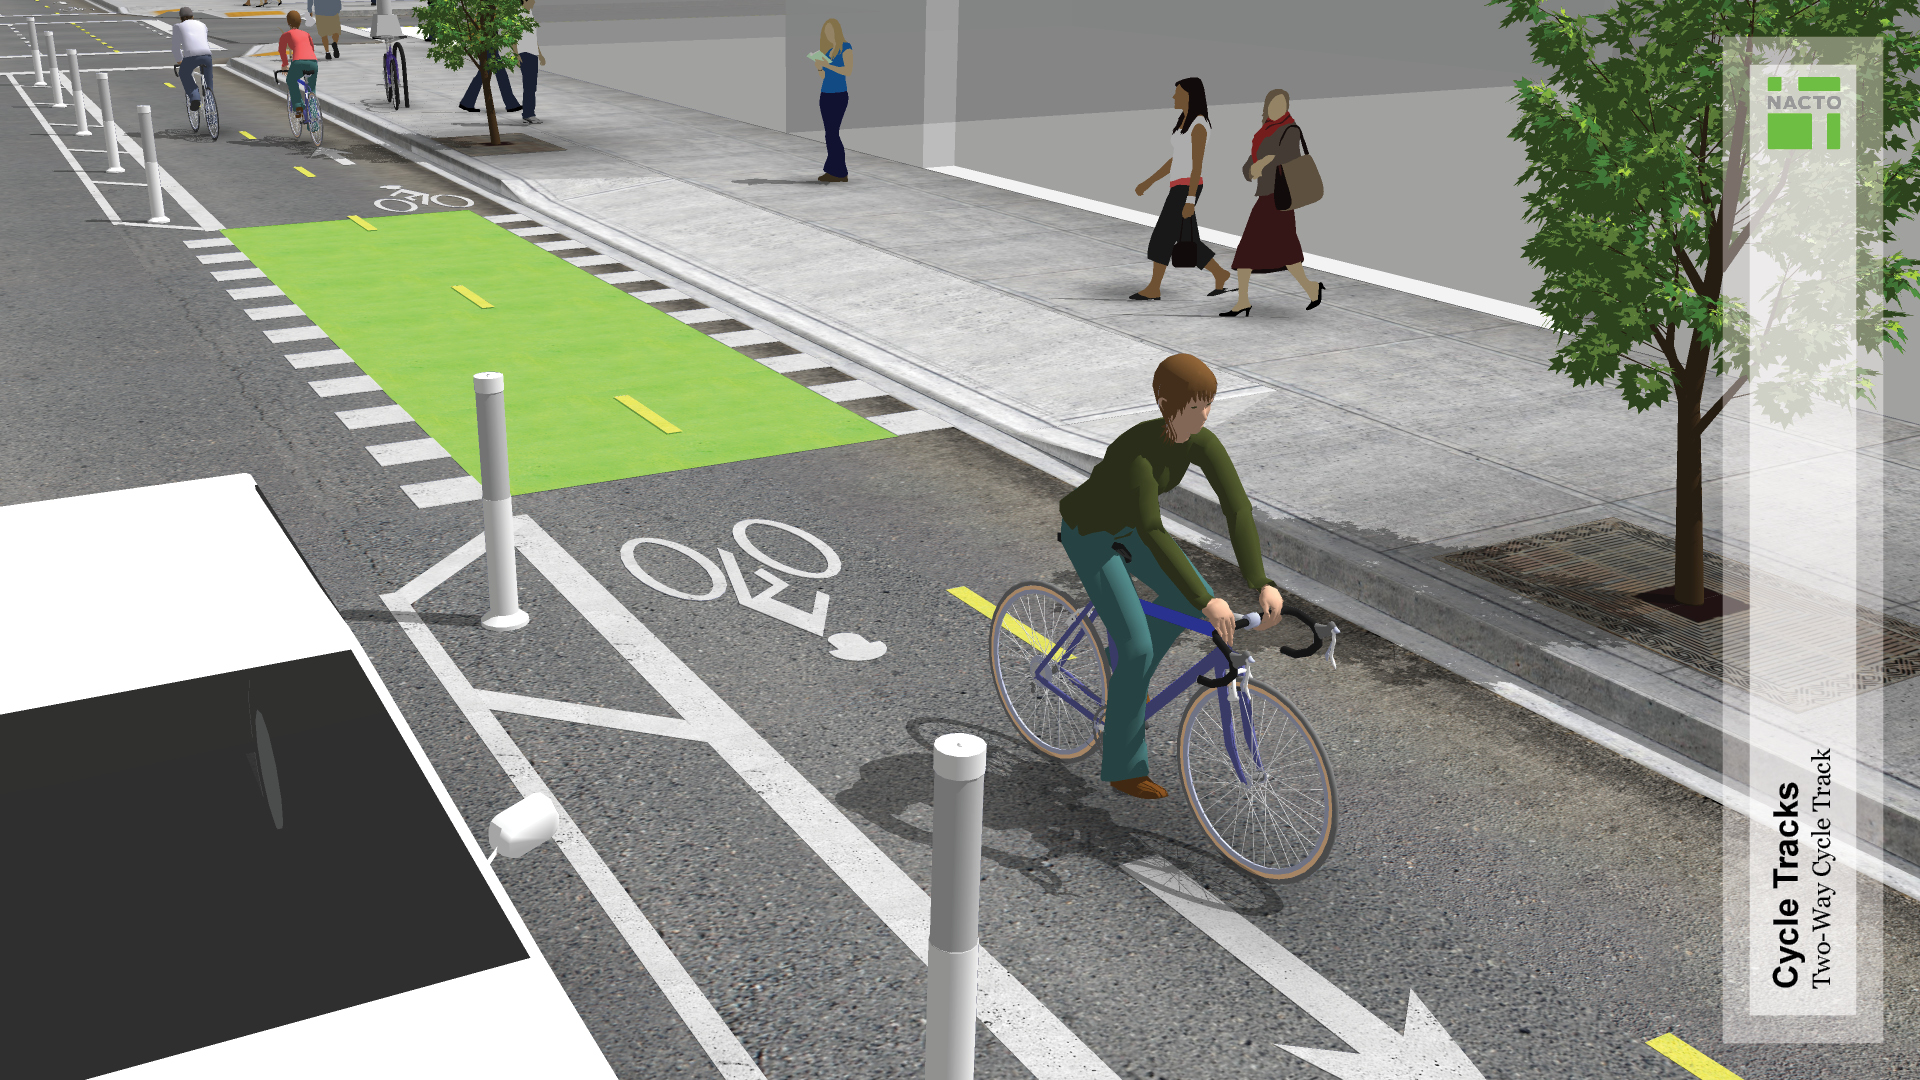 When complete, the two-way parking protected lane will resemble this rendering.